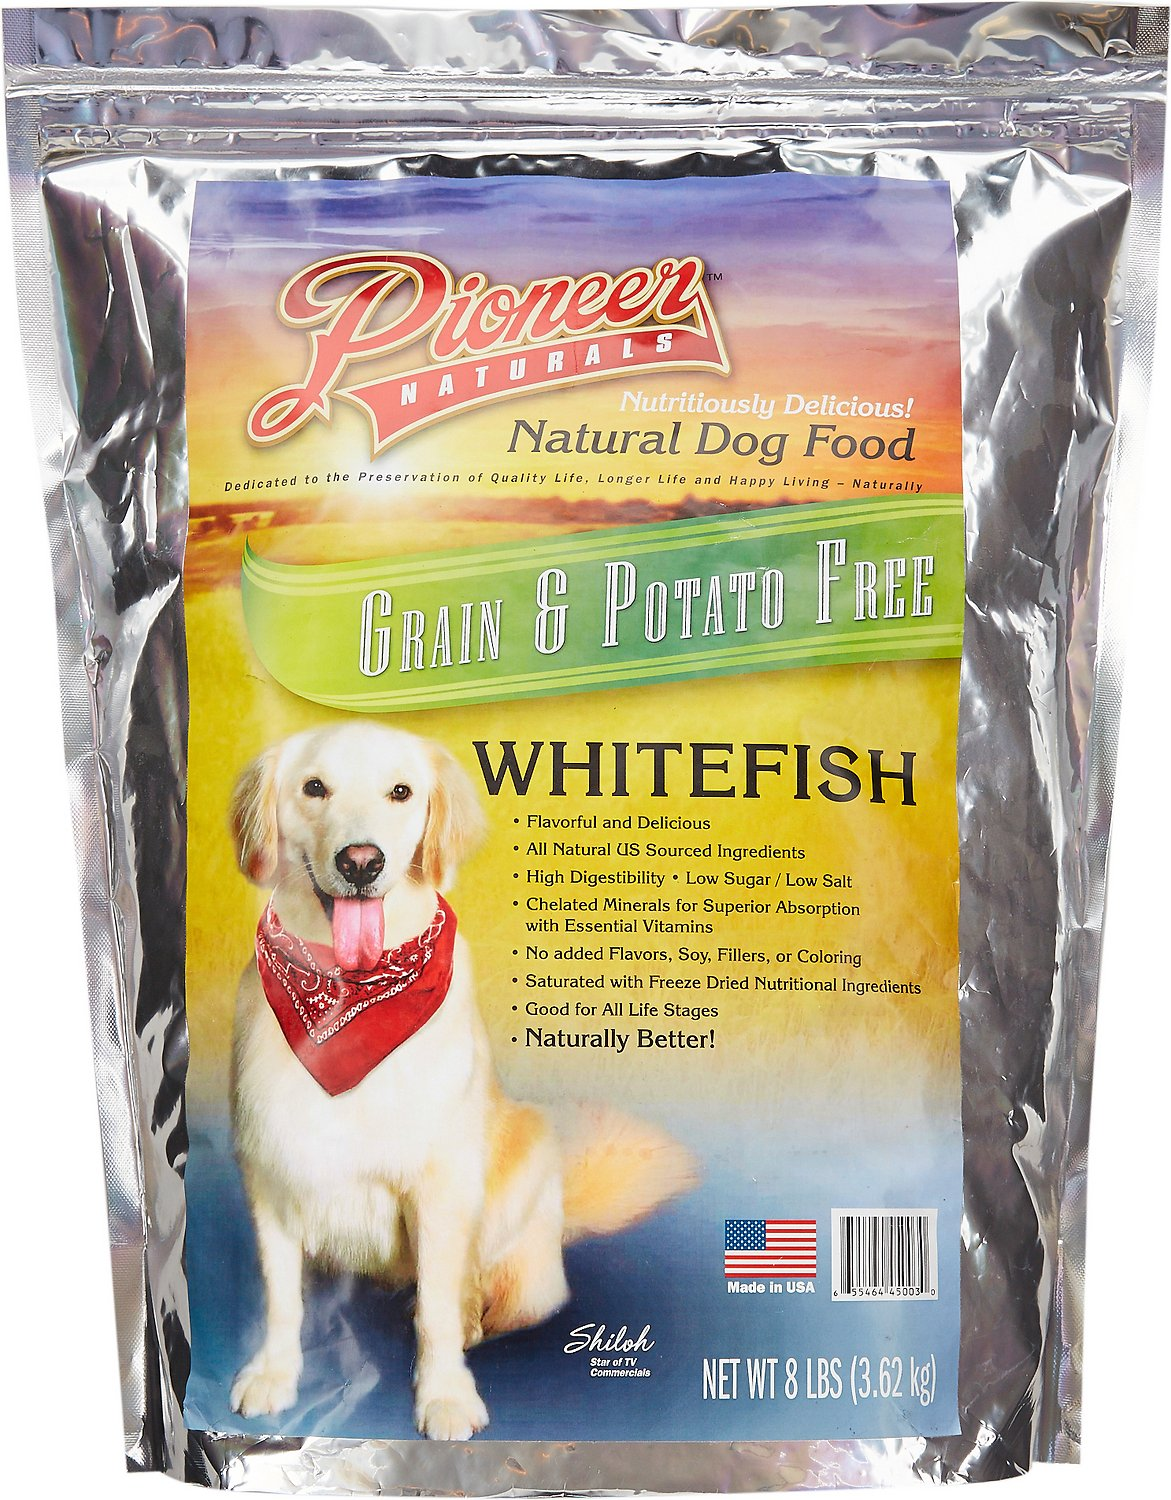 Pioneer Naturals Grain Free Whitefish Dry Dog Food